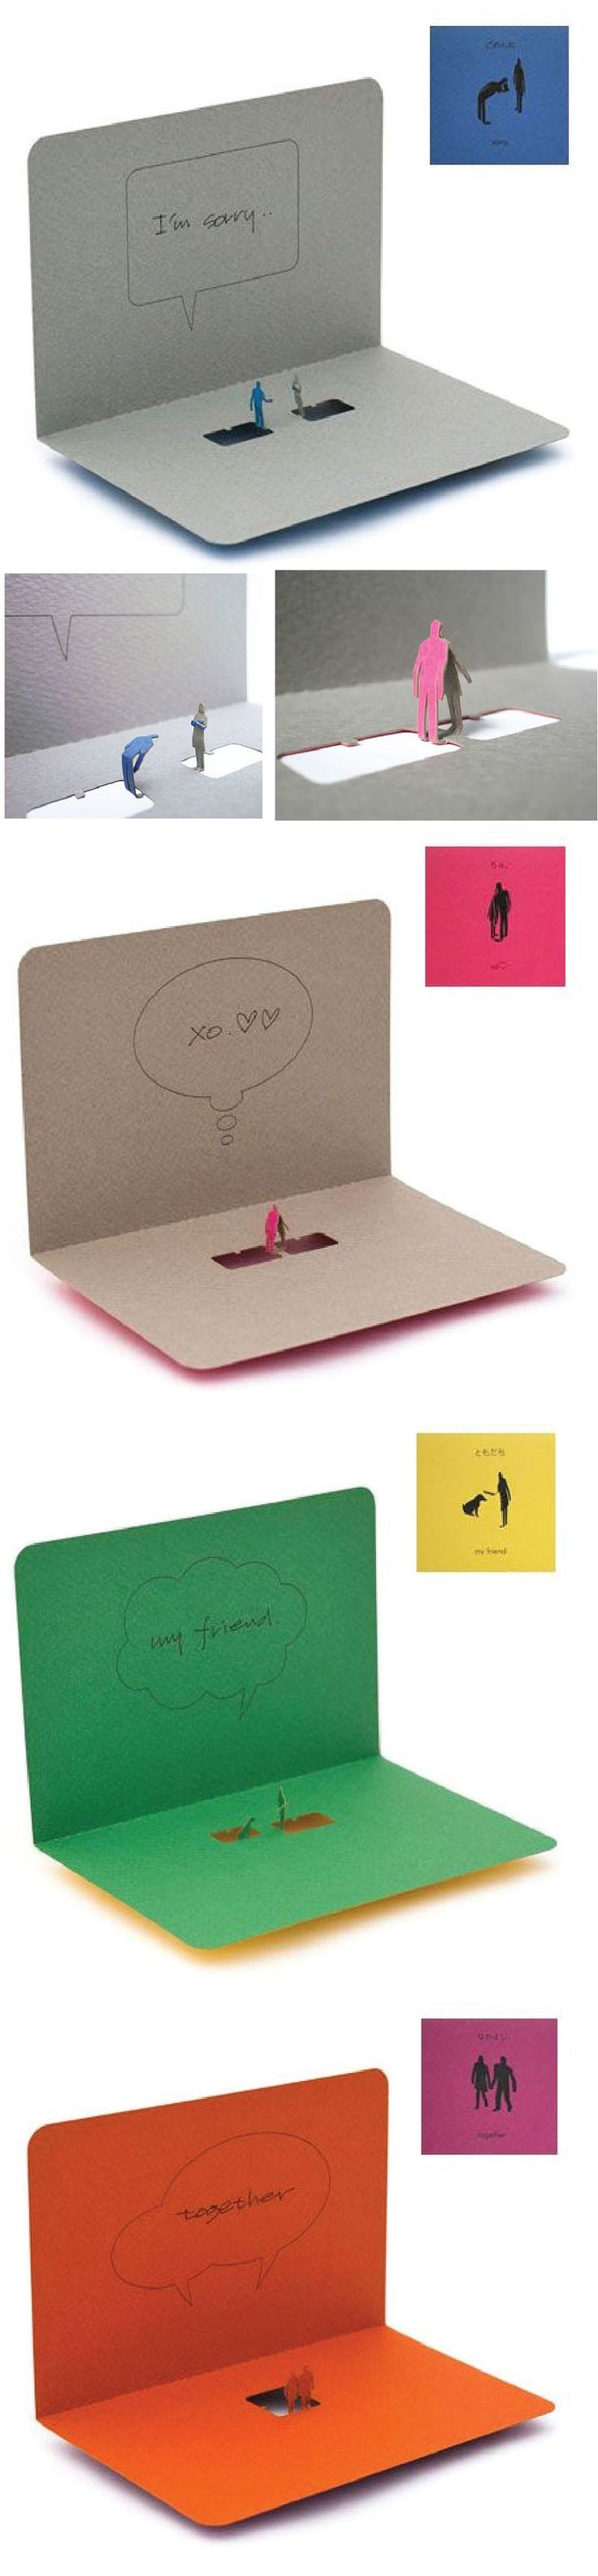 Cut out cards